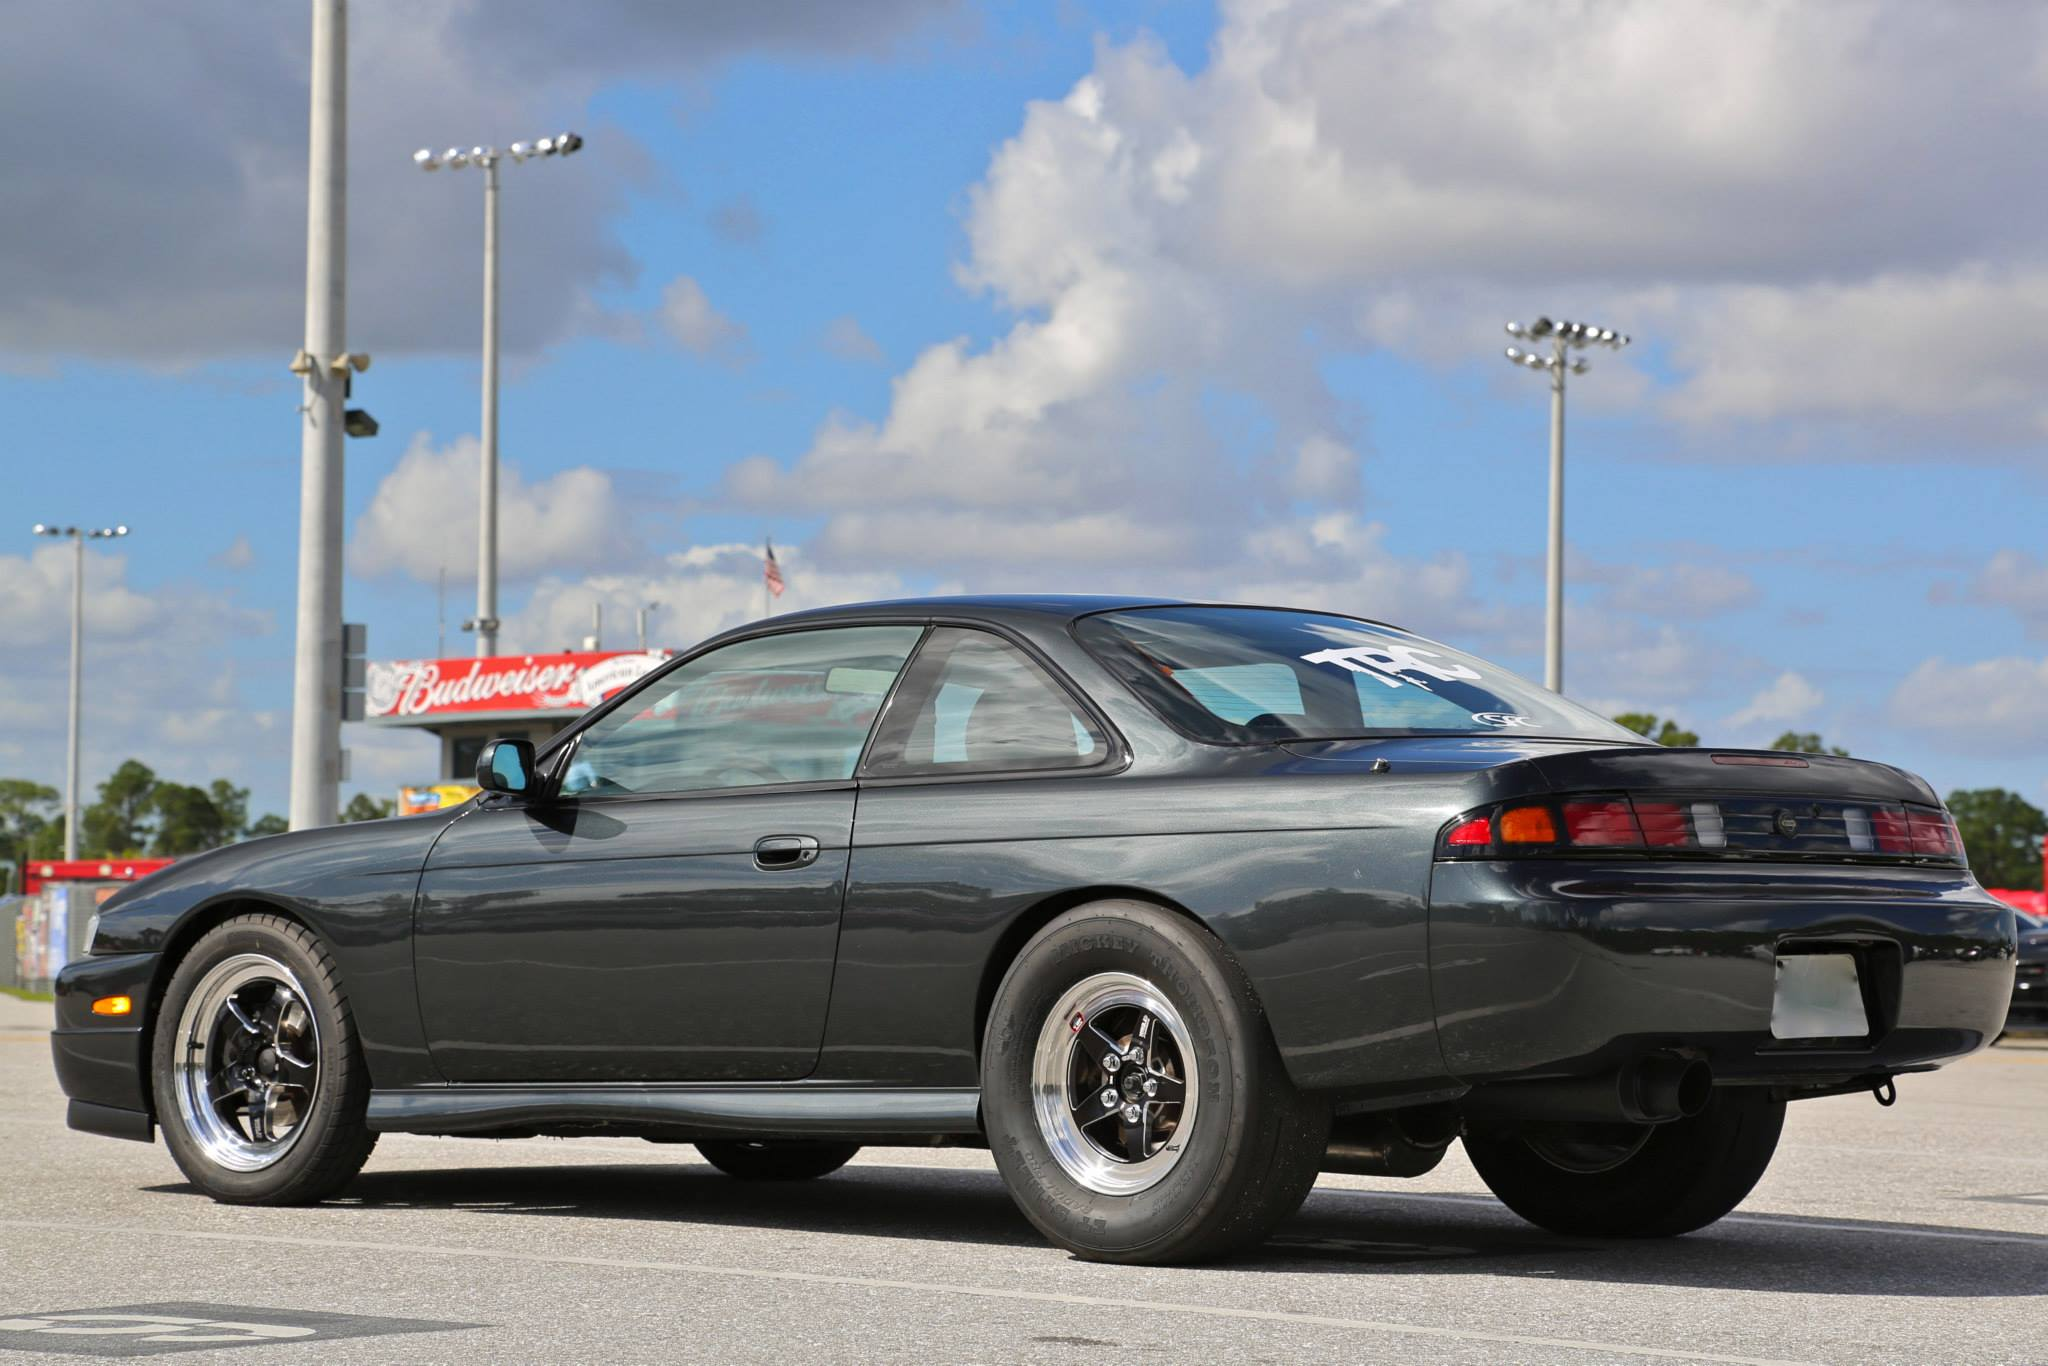 Trc Nissan 240sx With A 2jz Enters The 7 Second Club Engine Swap Depot 1998 For Sale